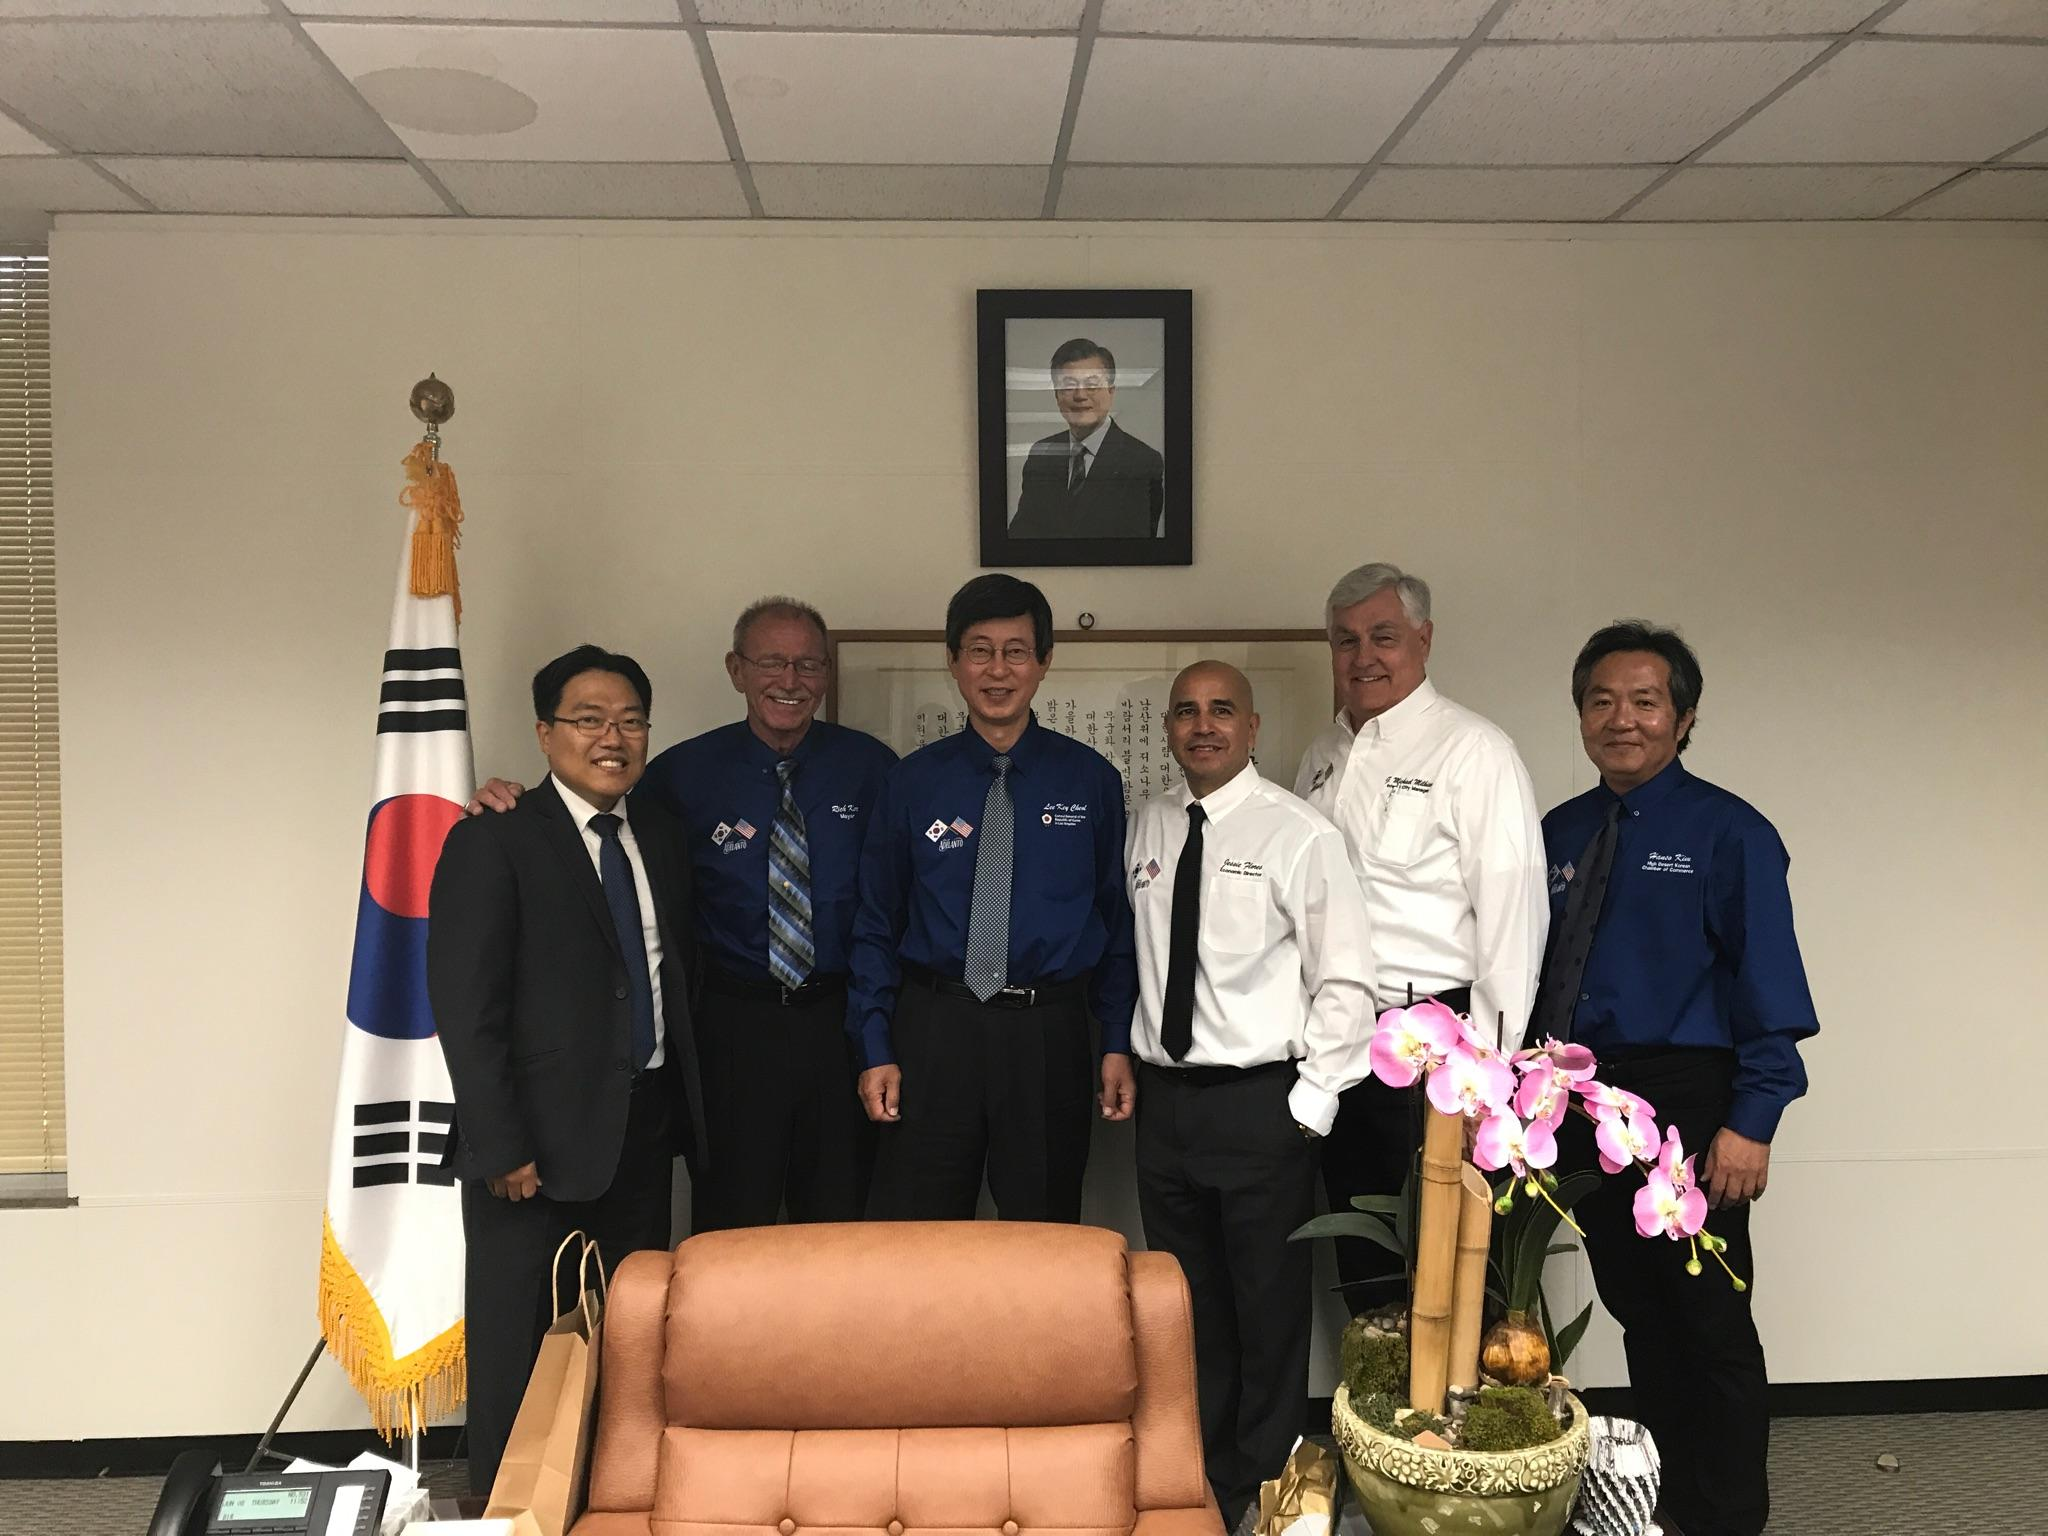 Adelanto seeks to strengthen ties with South Korea